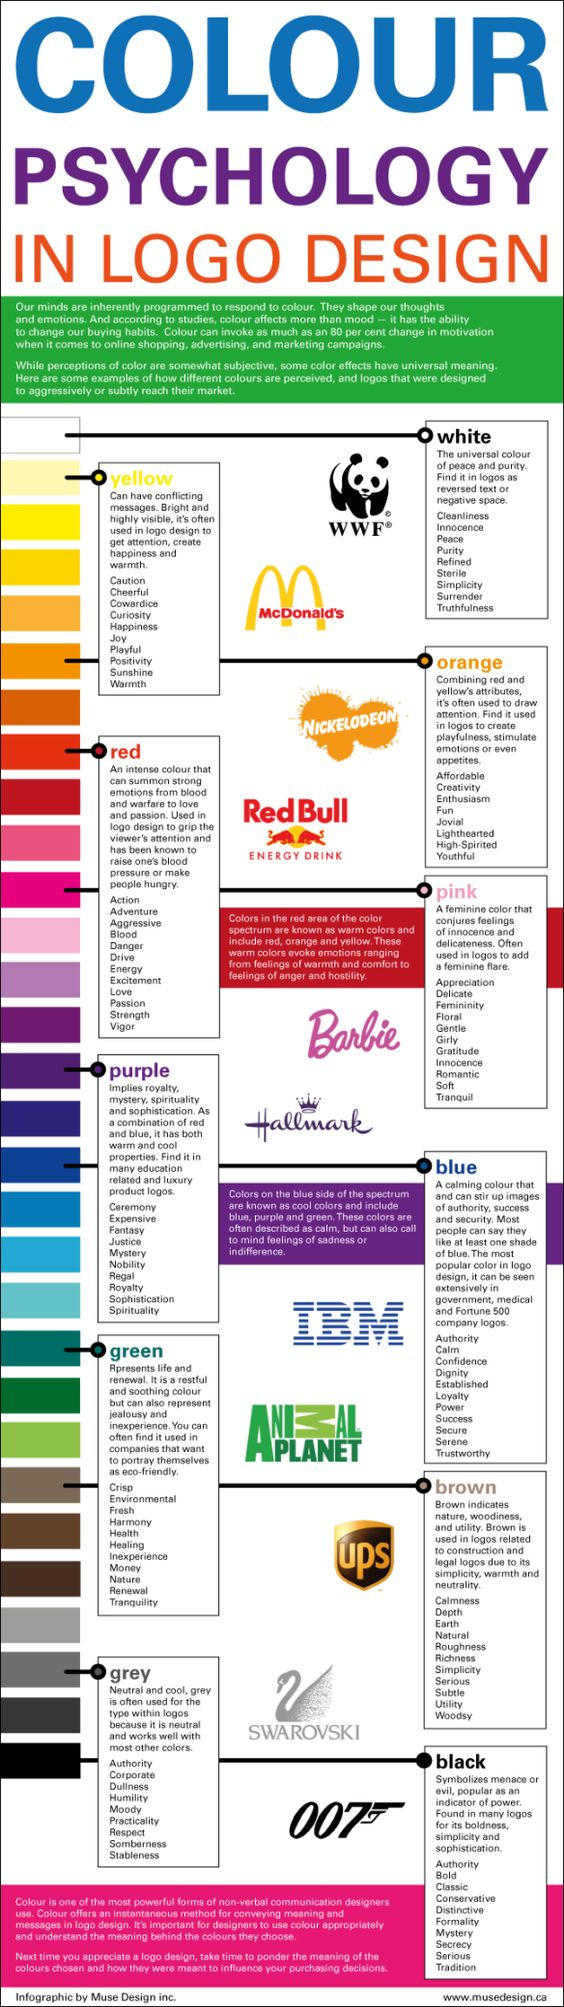 color psychology infographic 3